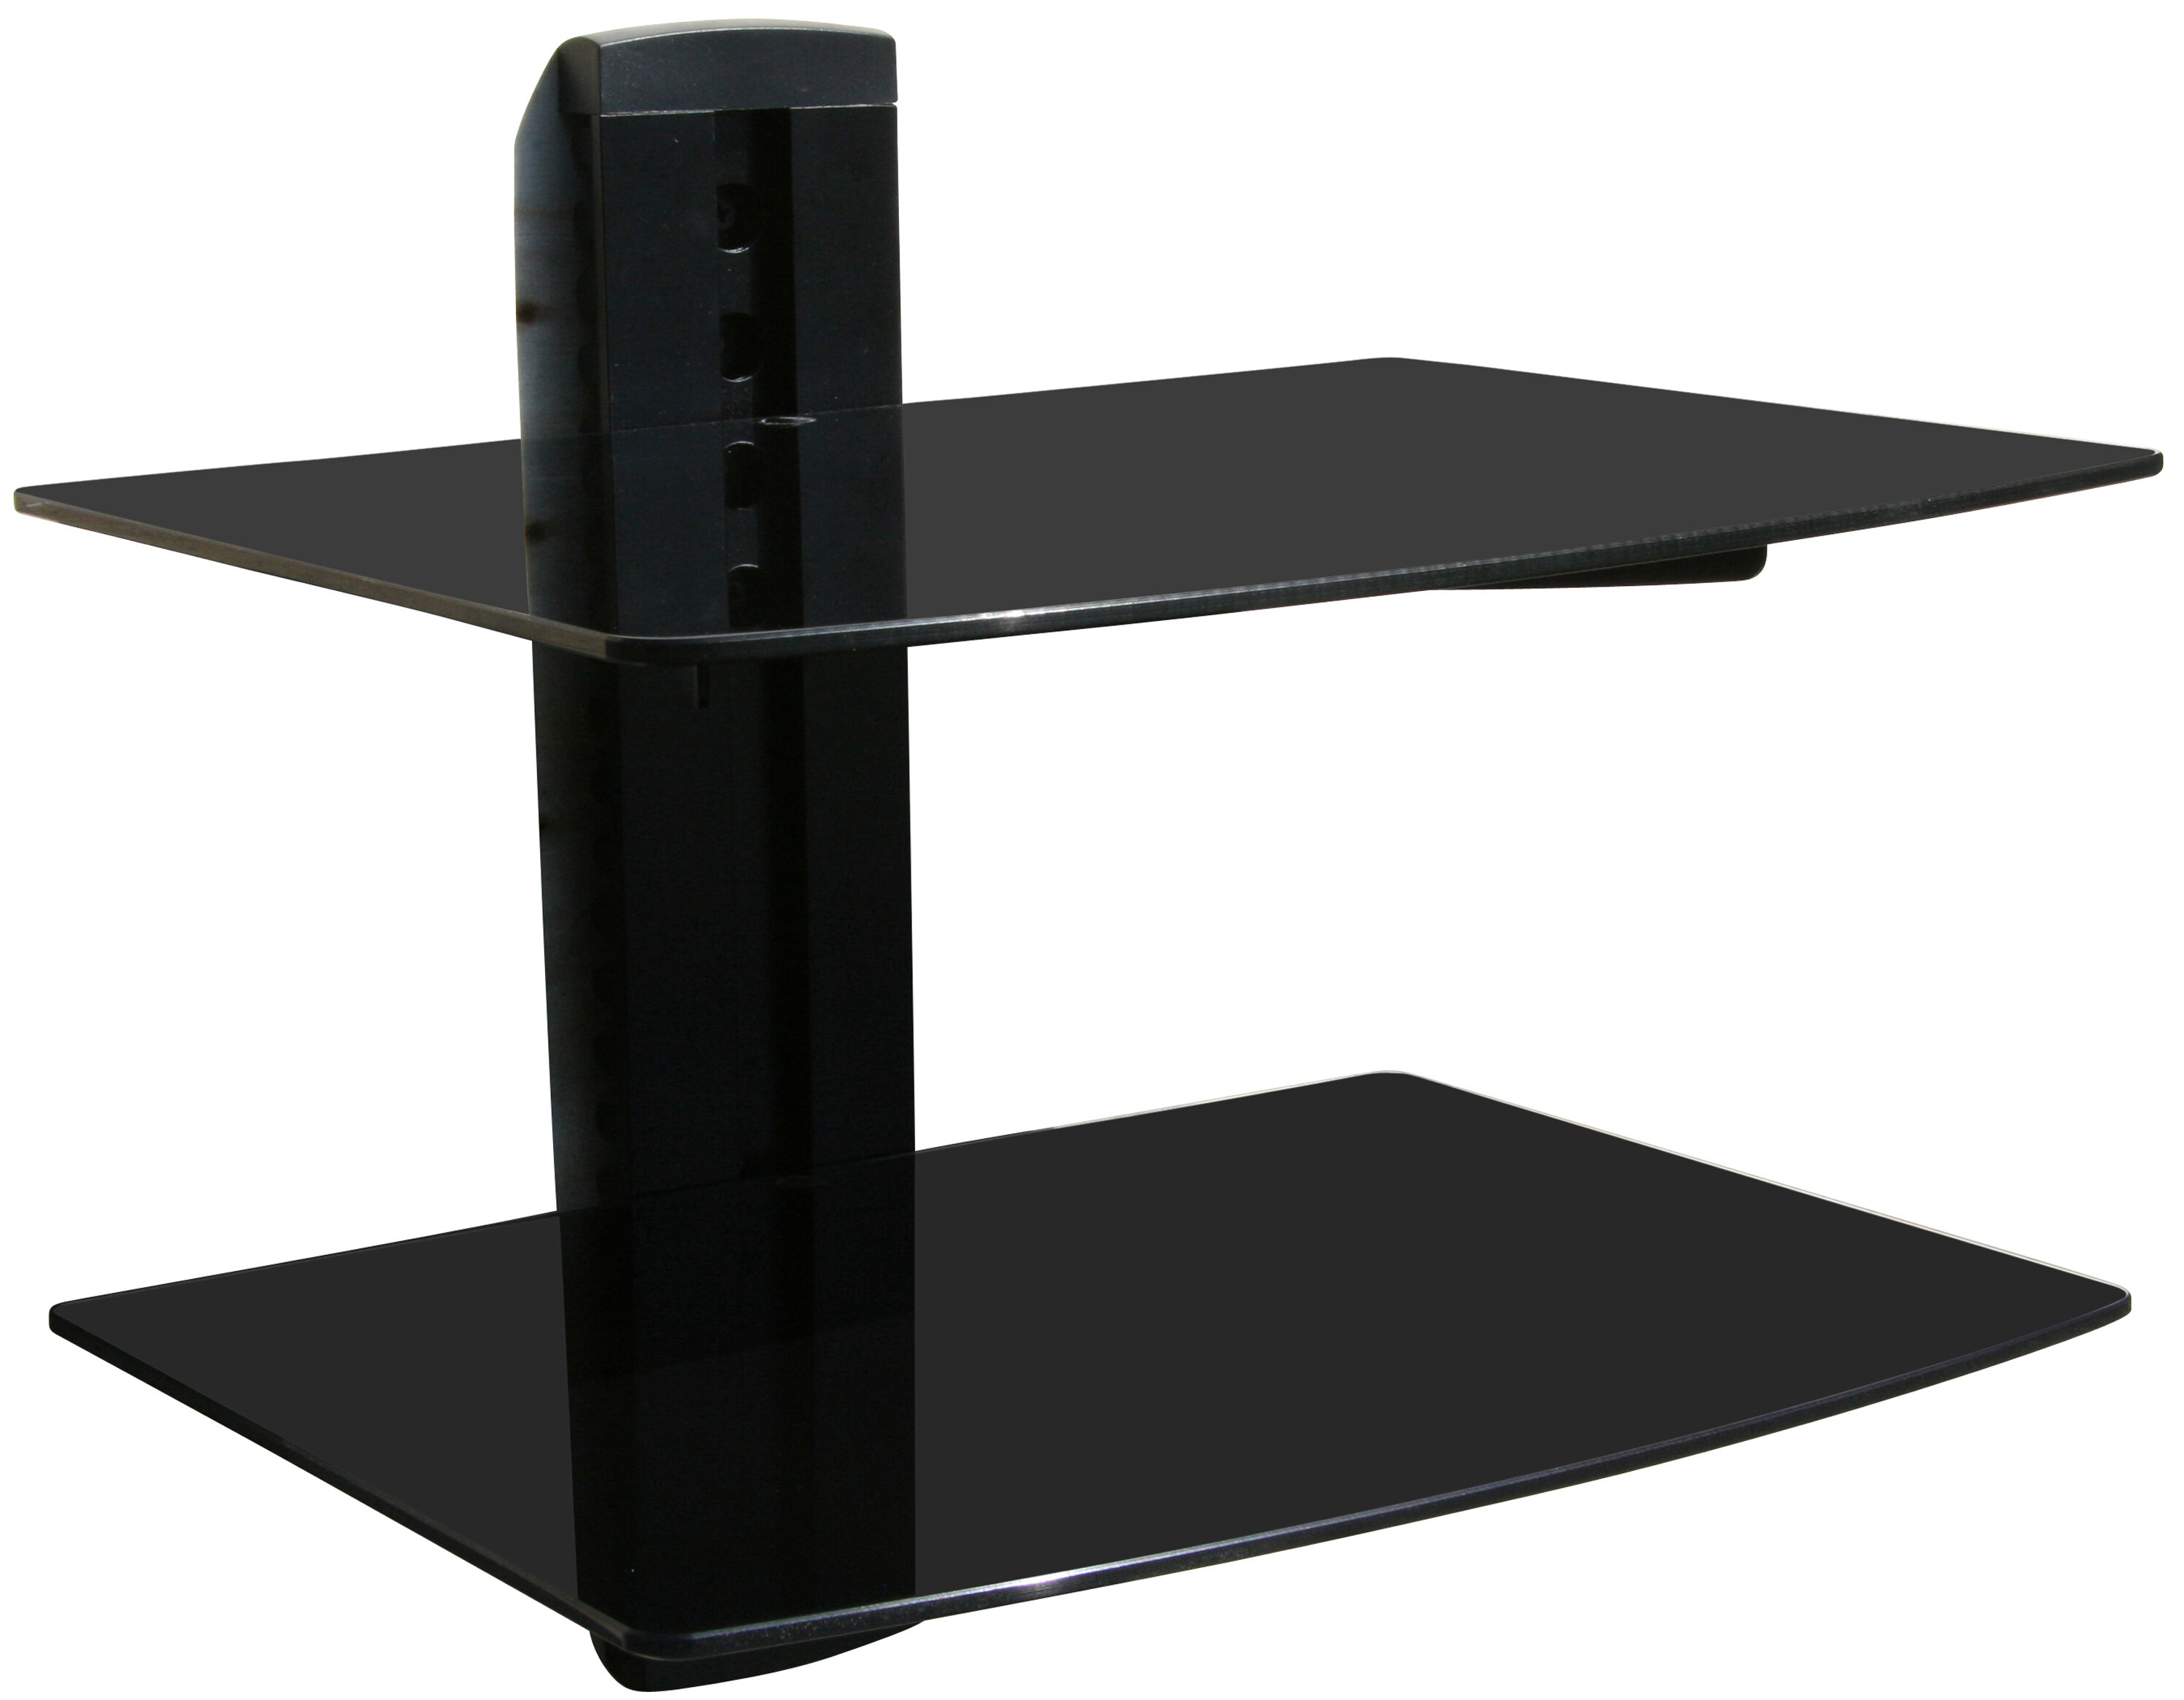 cabinets shelf entertainment stand side center tv component black wood product wd